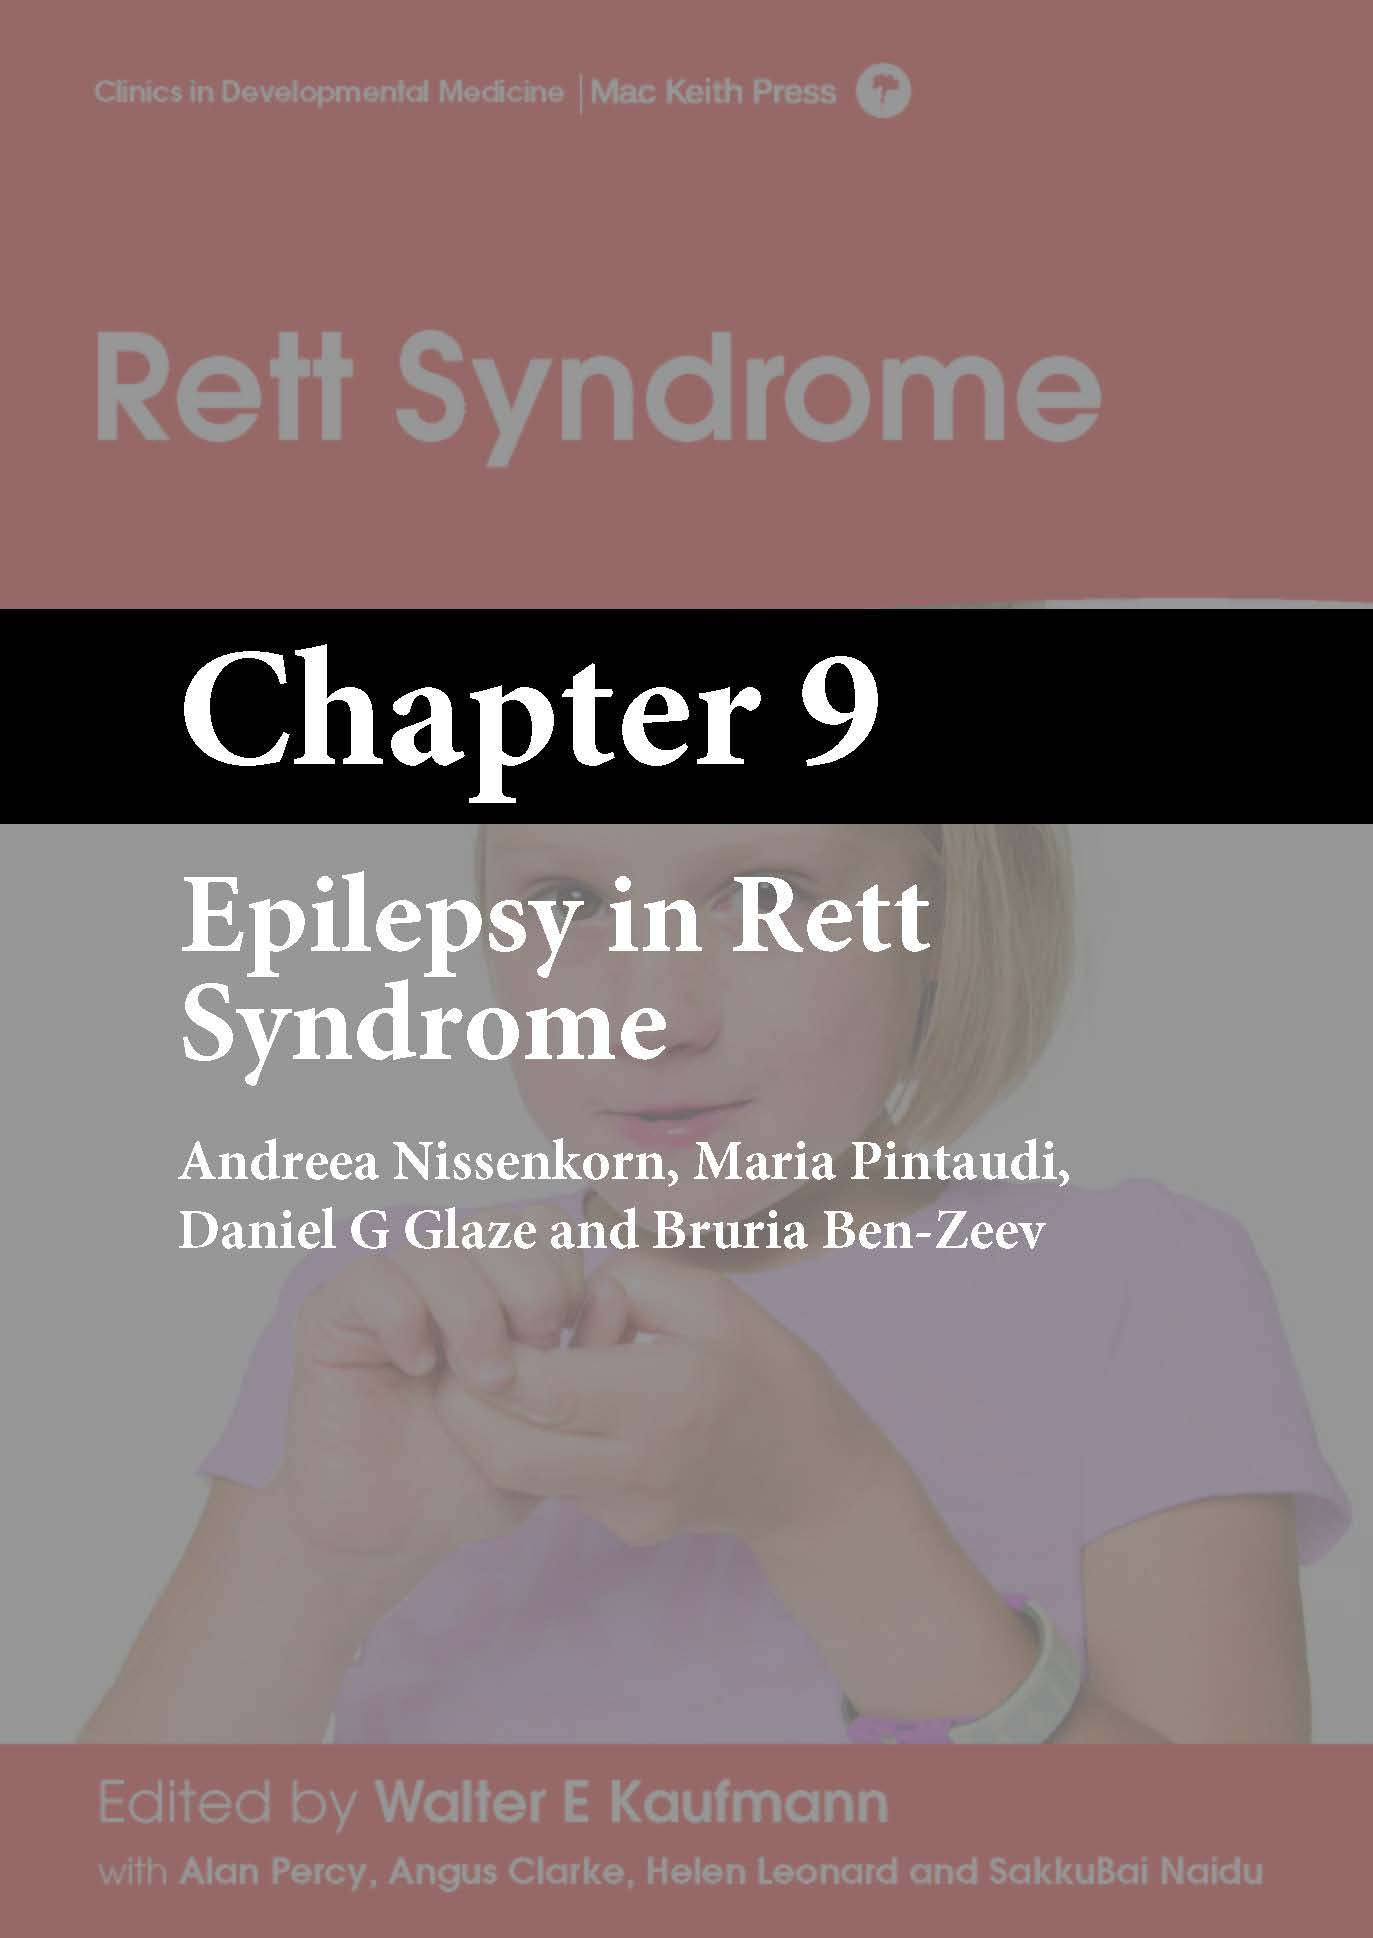 Rett Syndrome, Kaufmann, Chapter 9 cover